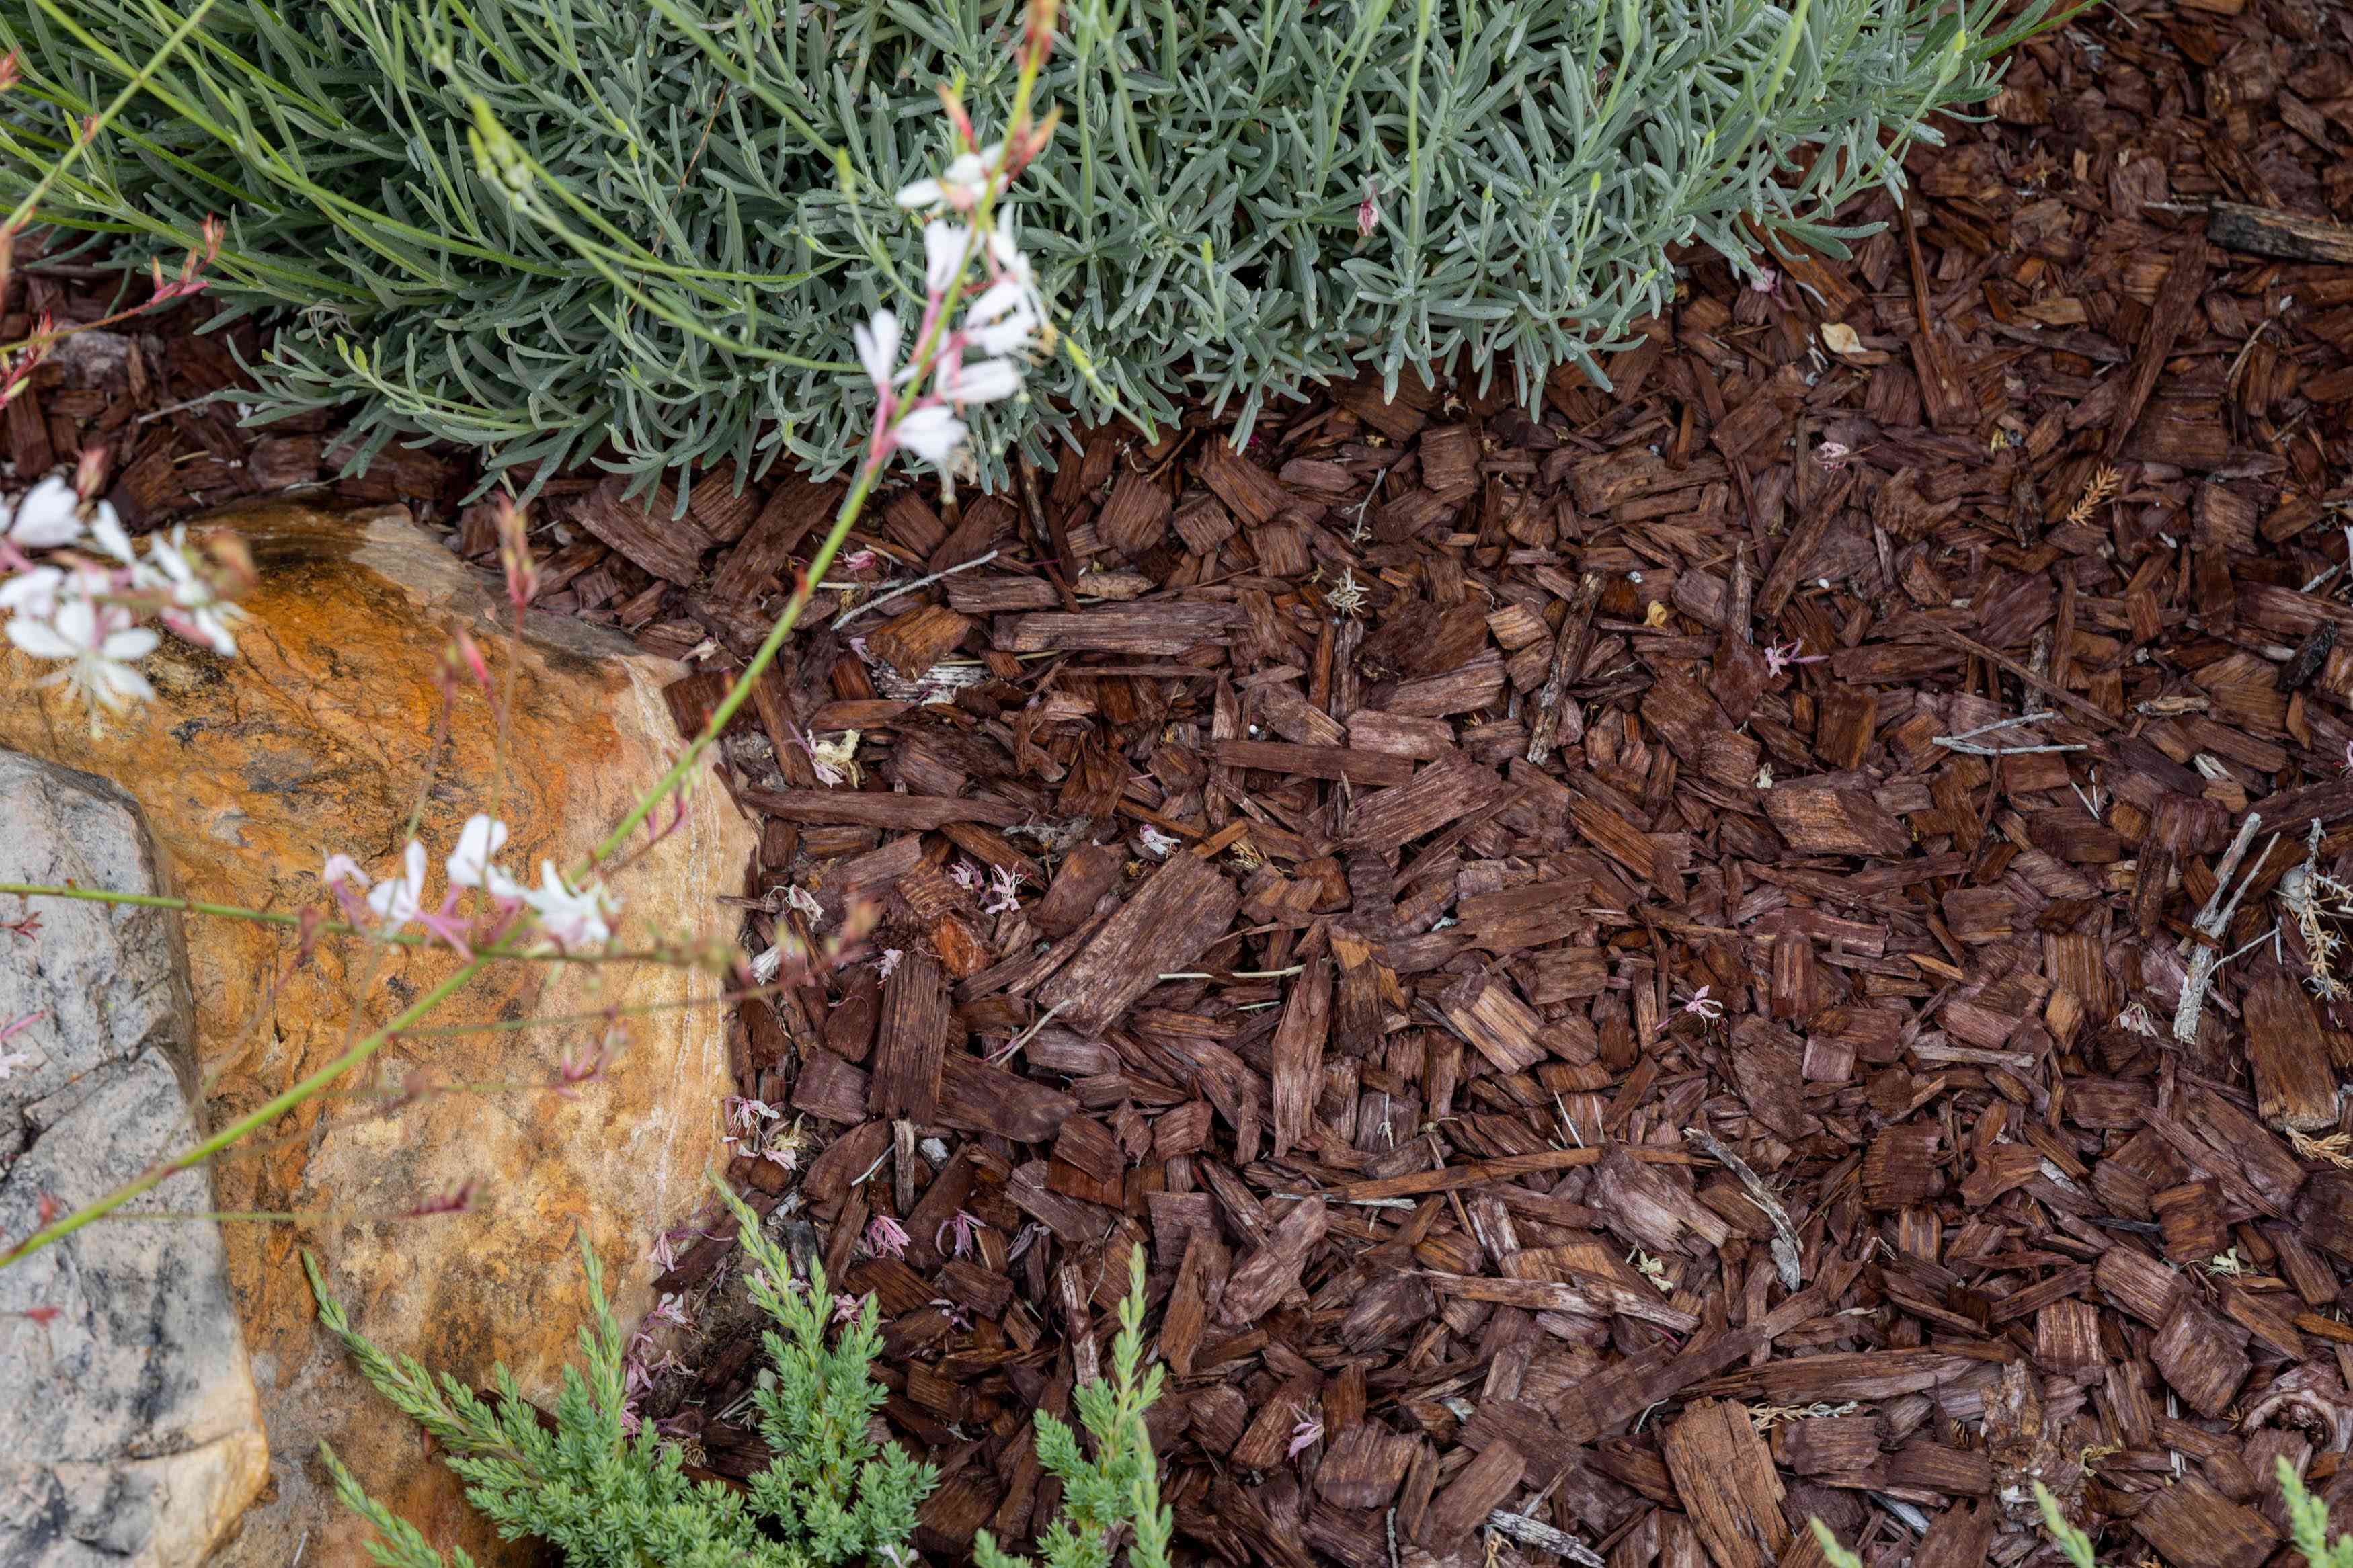 Mulch covering soil next to outdoor plants and rock